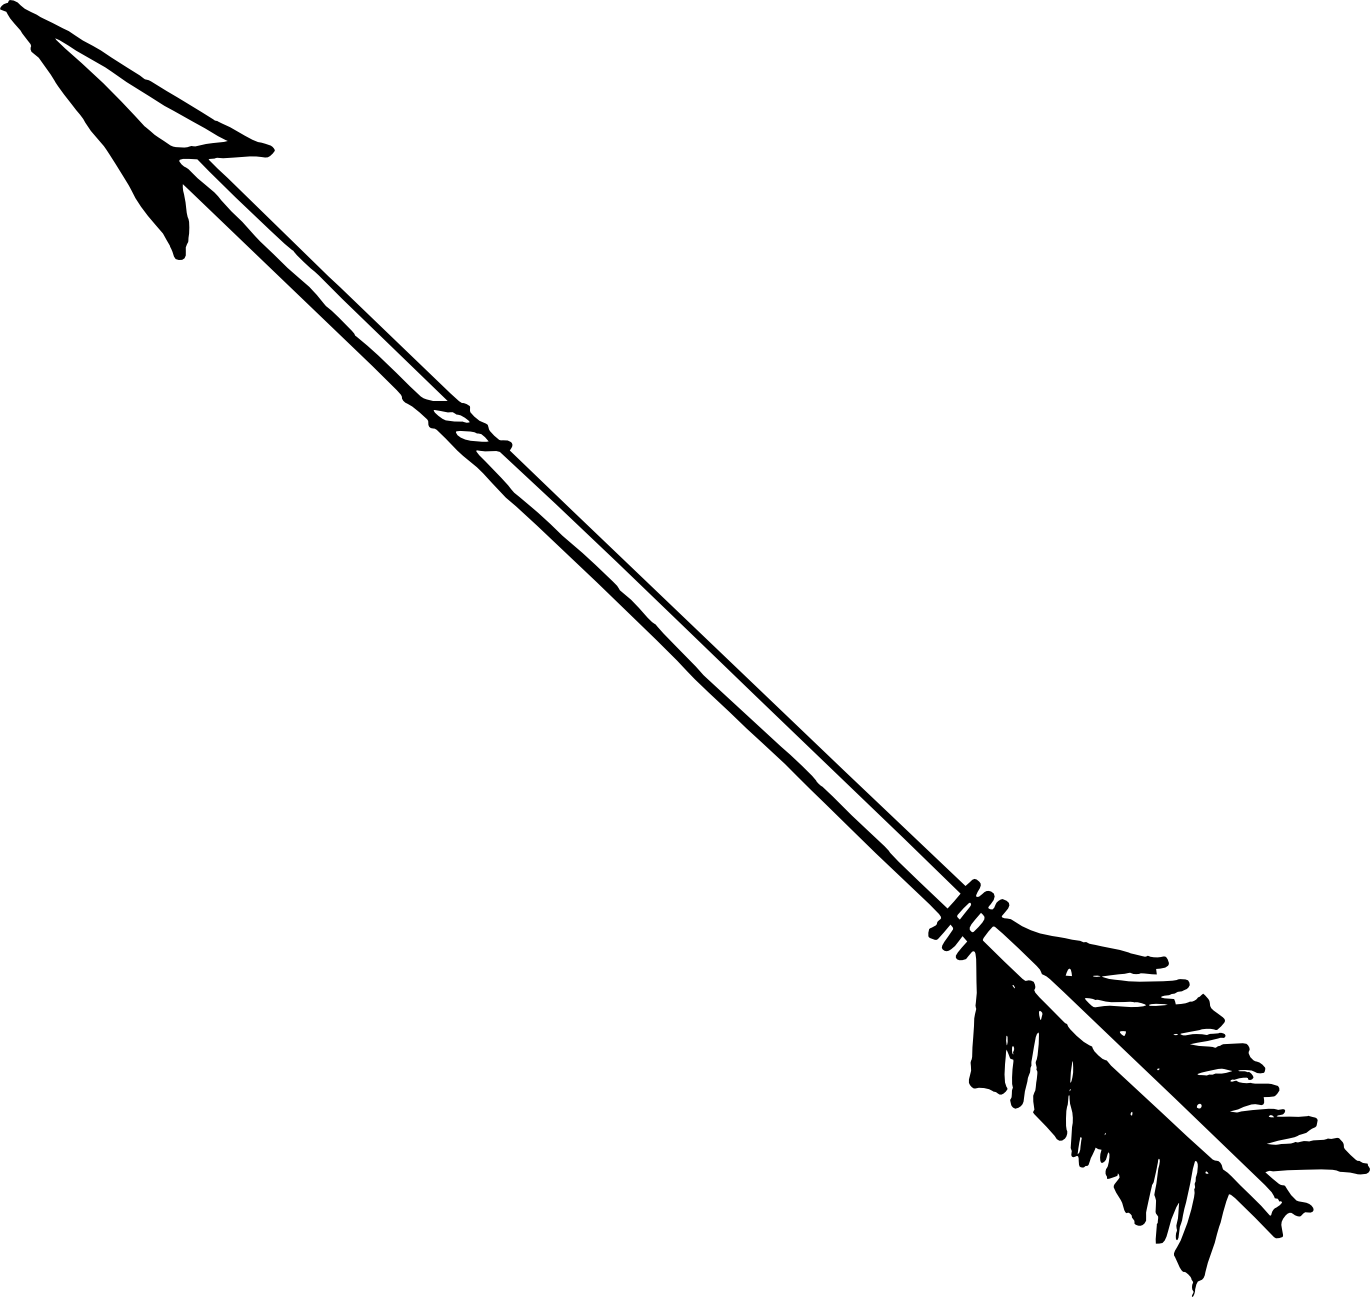 Bow Arrow Vector Png #44420.